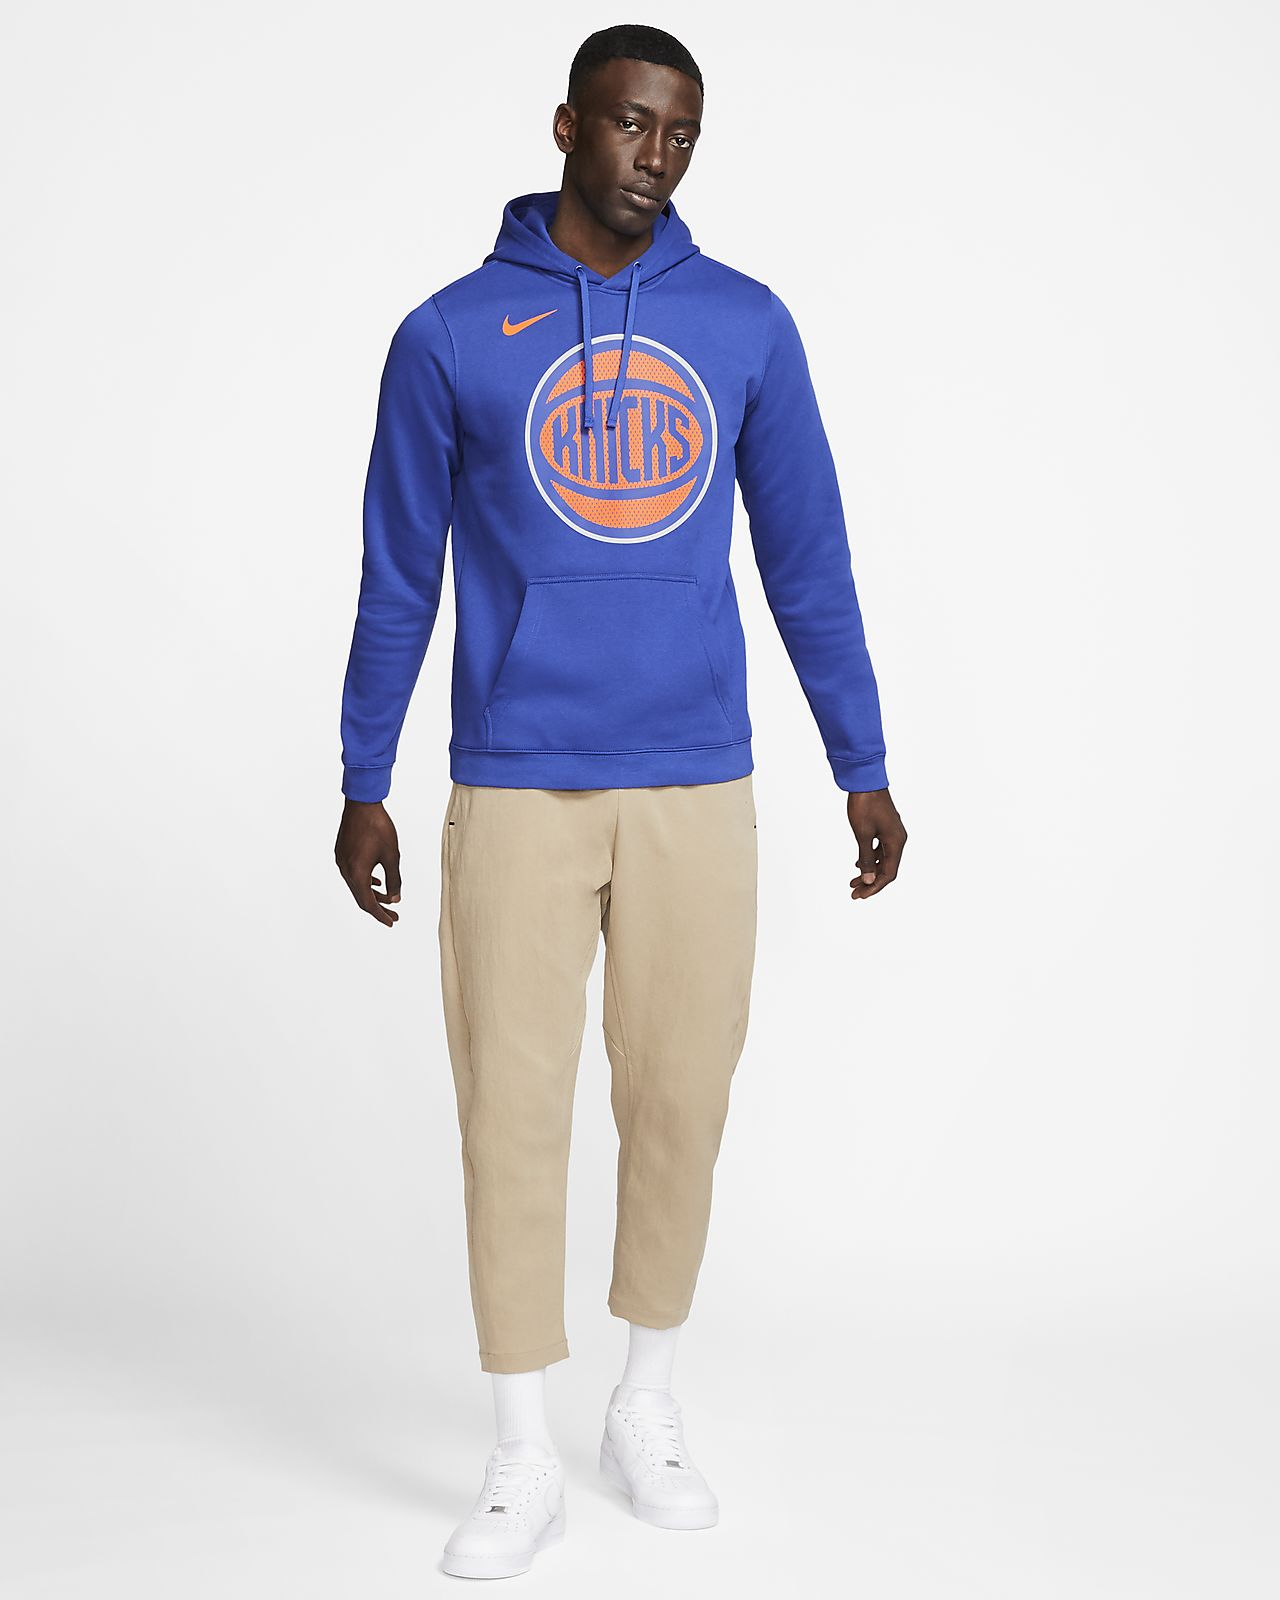 New York Knicks Nike Men's NBA Hoodie